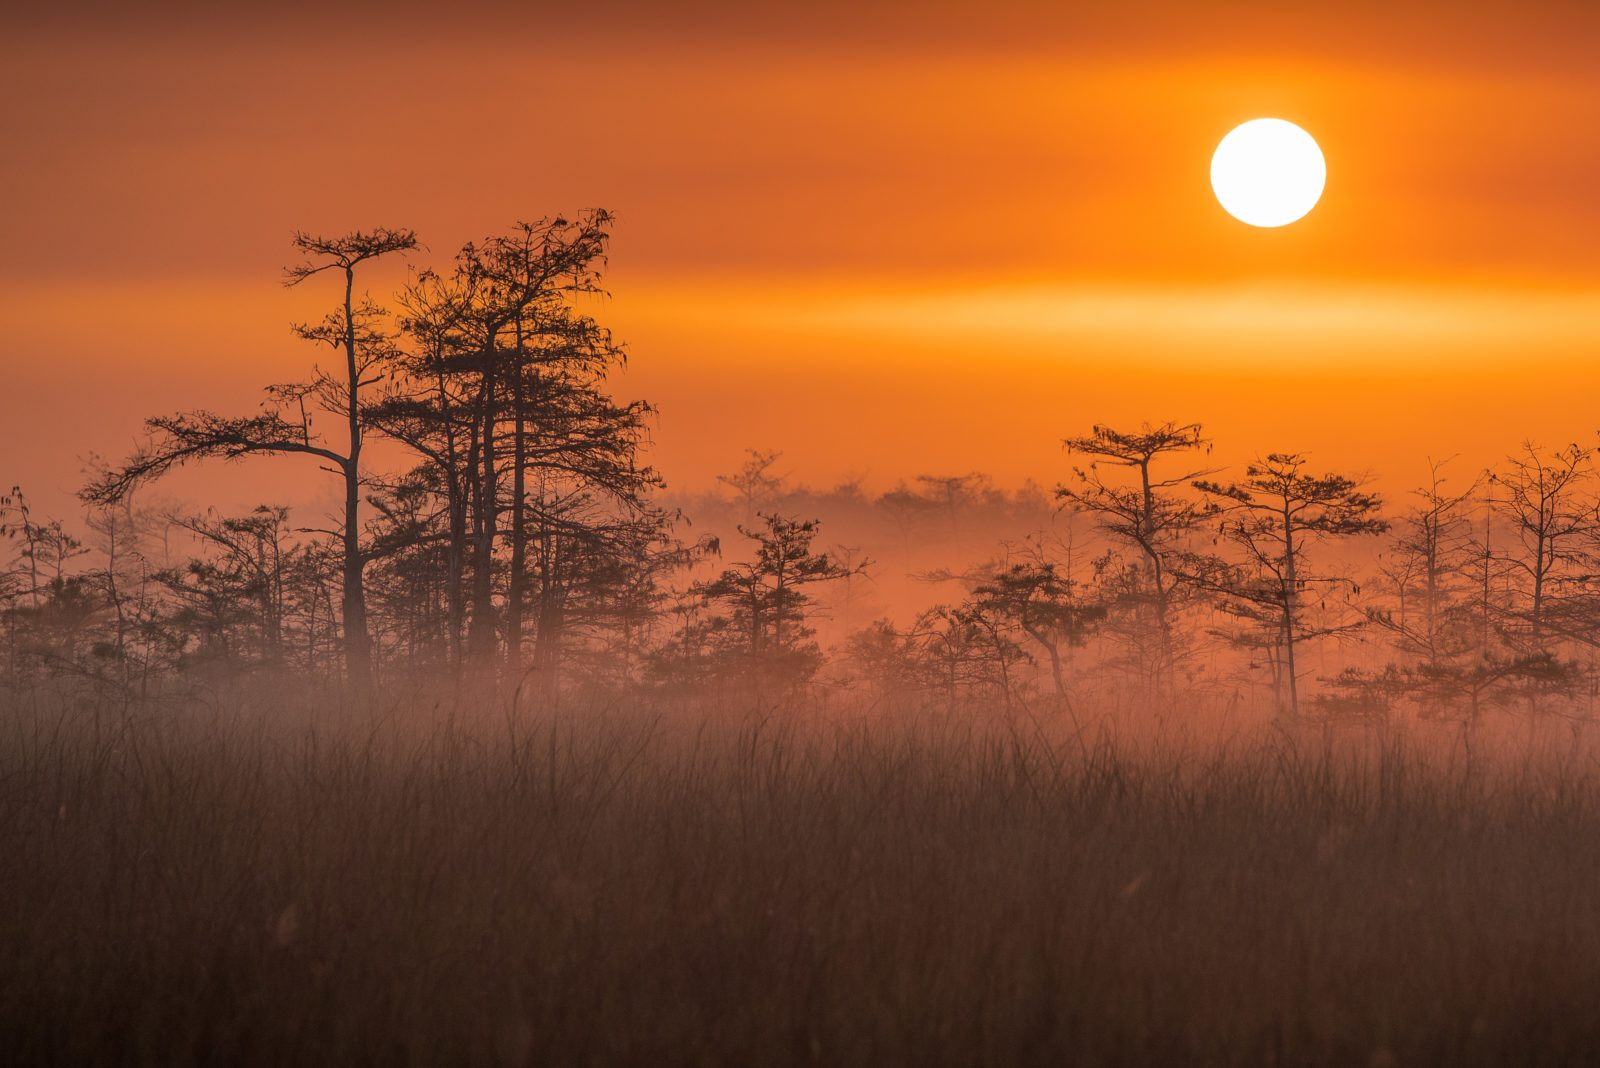 Morning Mist in the Everglades